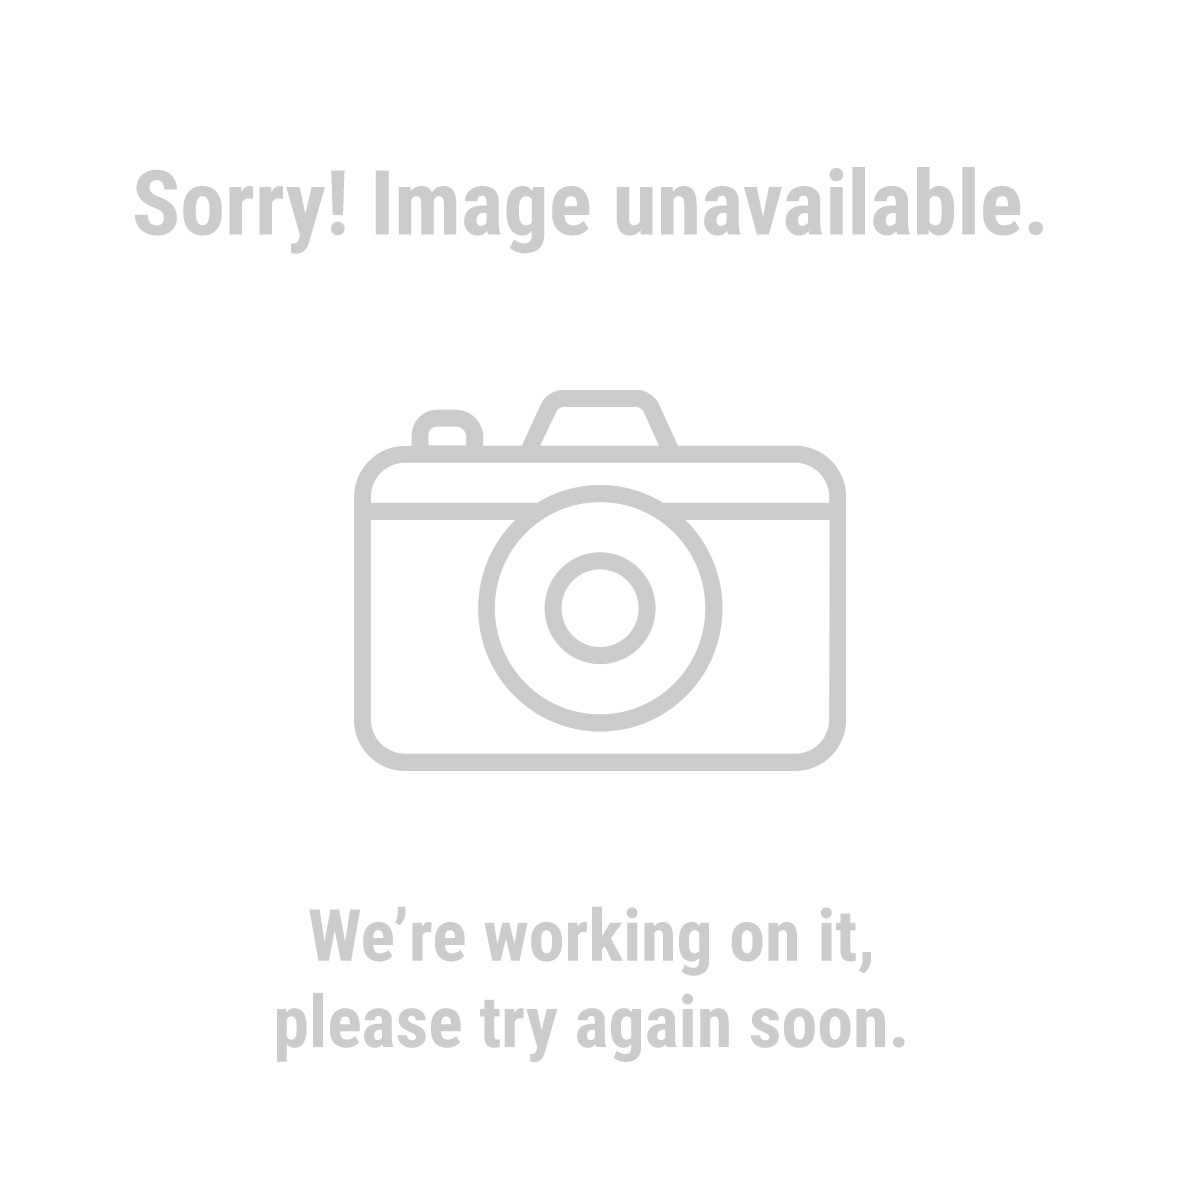 Drill Master 61424 1/4 in. 18 Volt Cordless Impact Driver